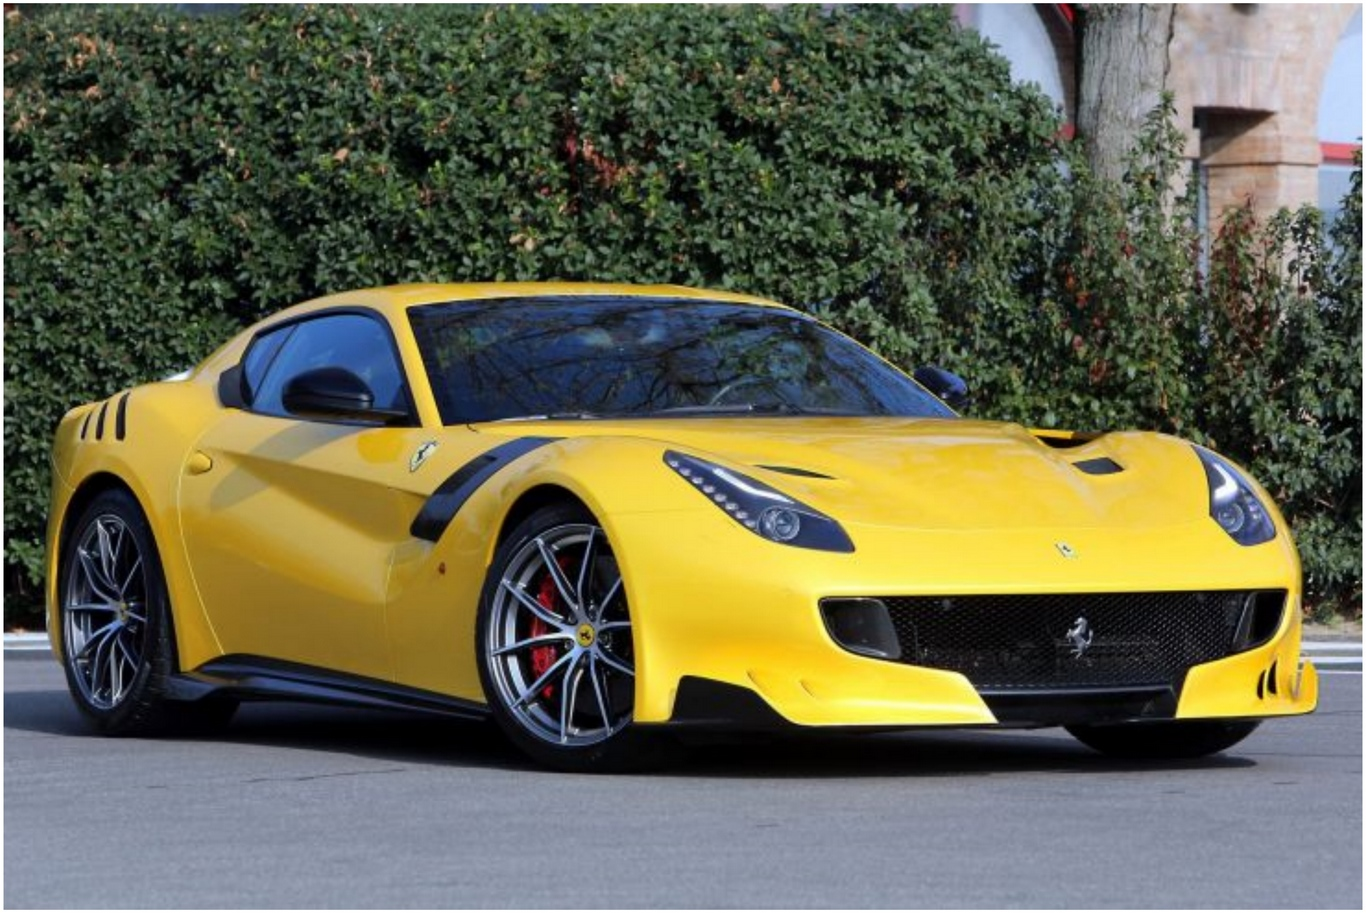 2016-Ferrari-F12tdf-hd-Car-Picture-Download